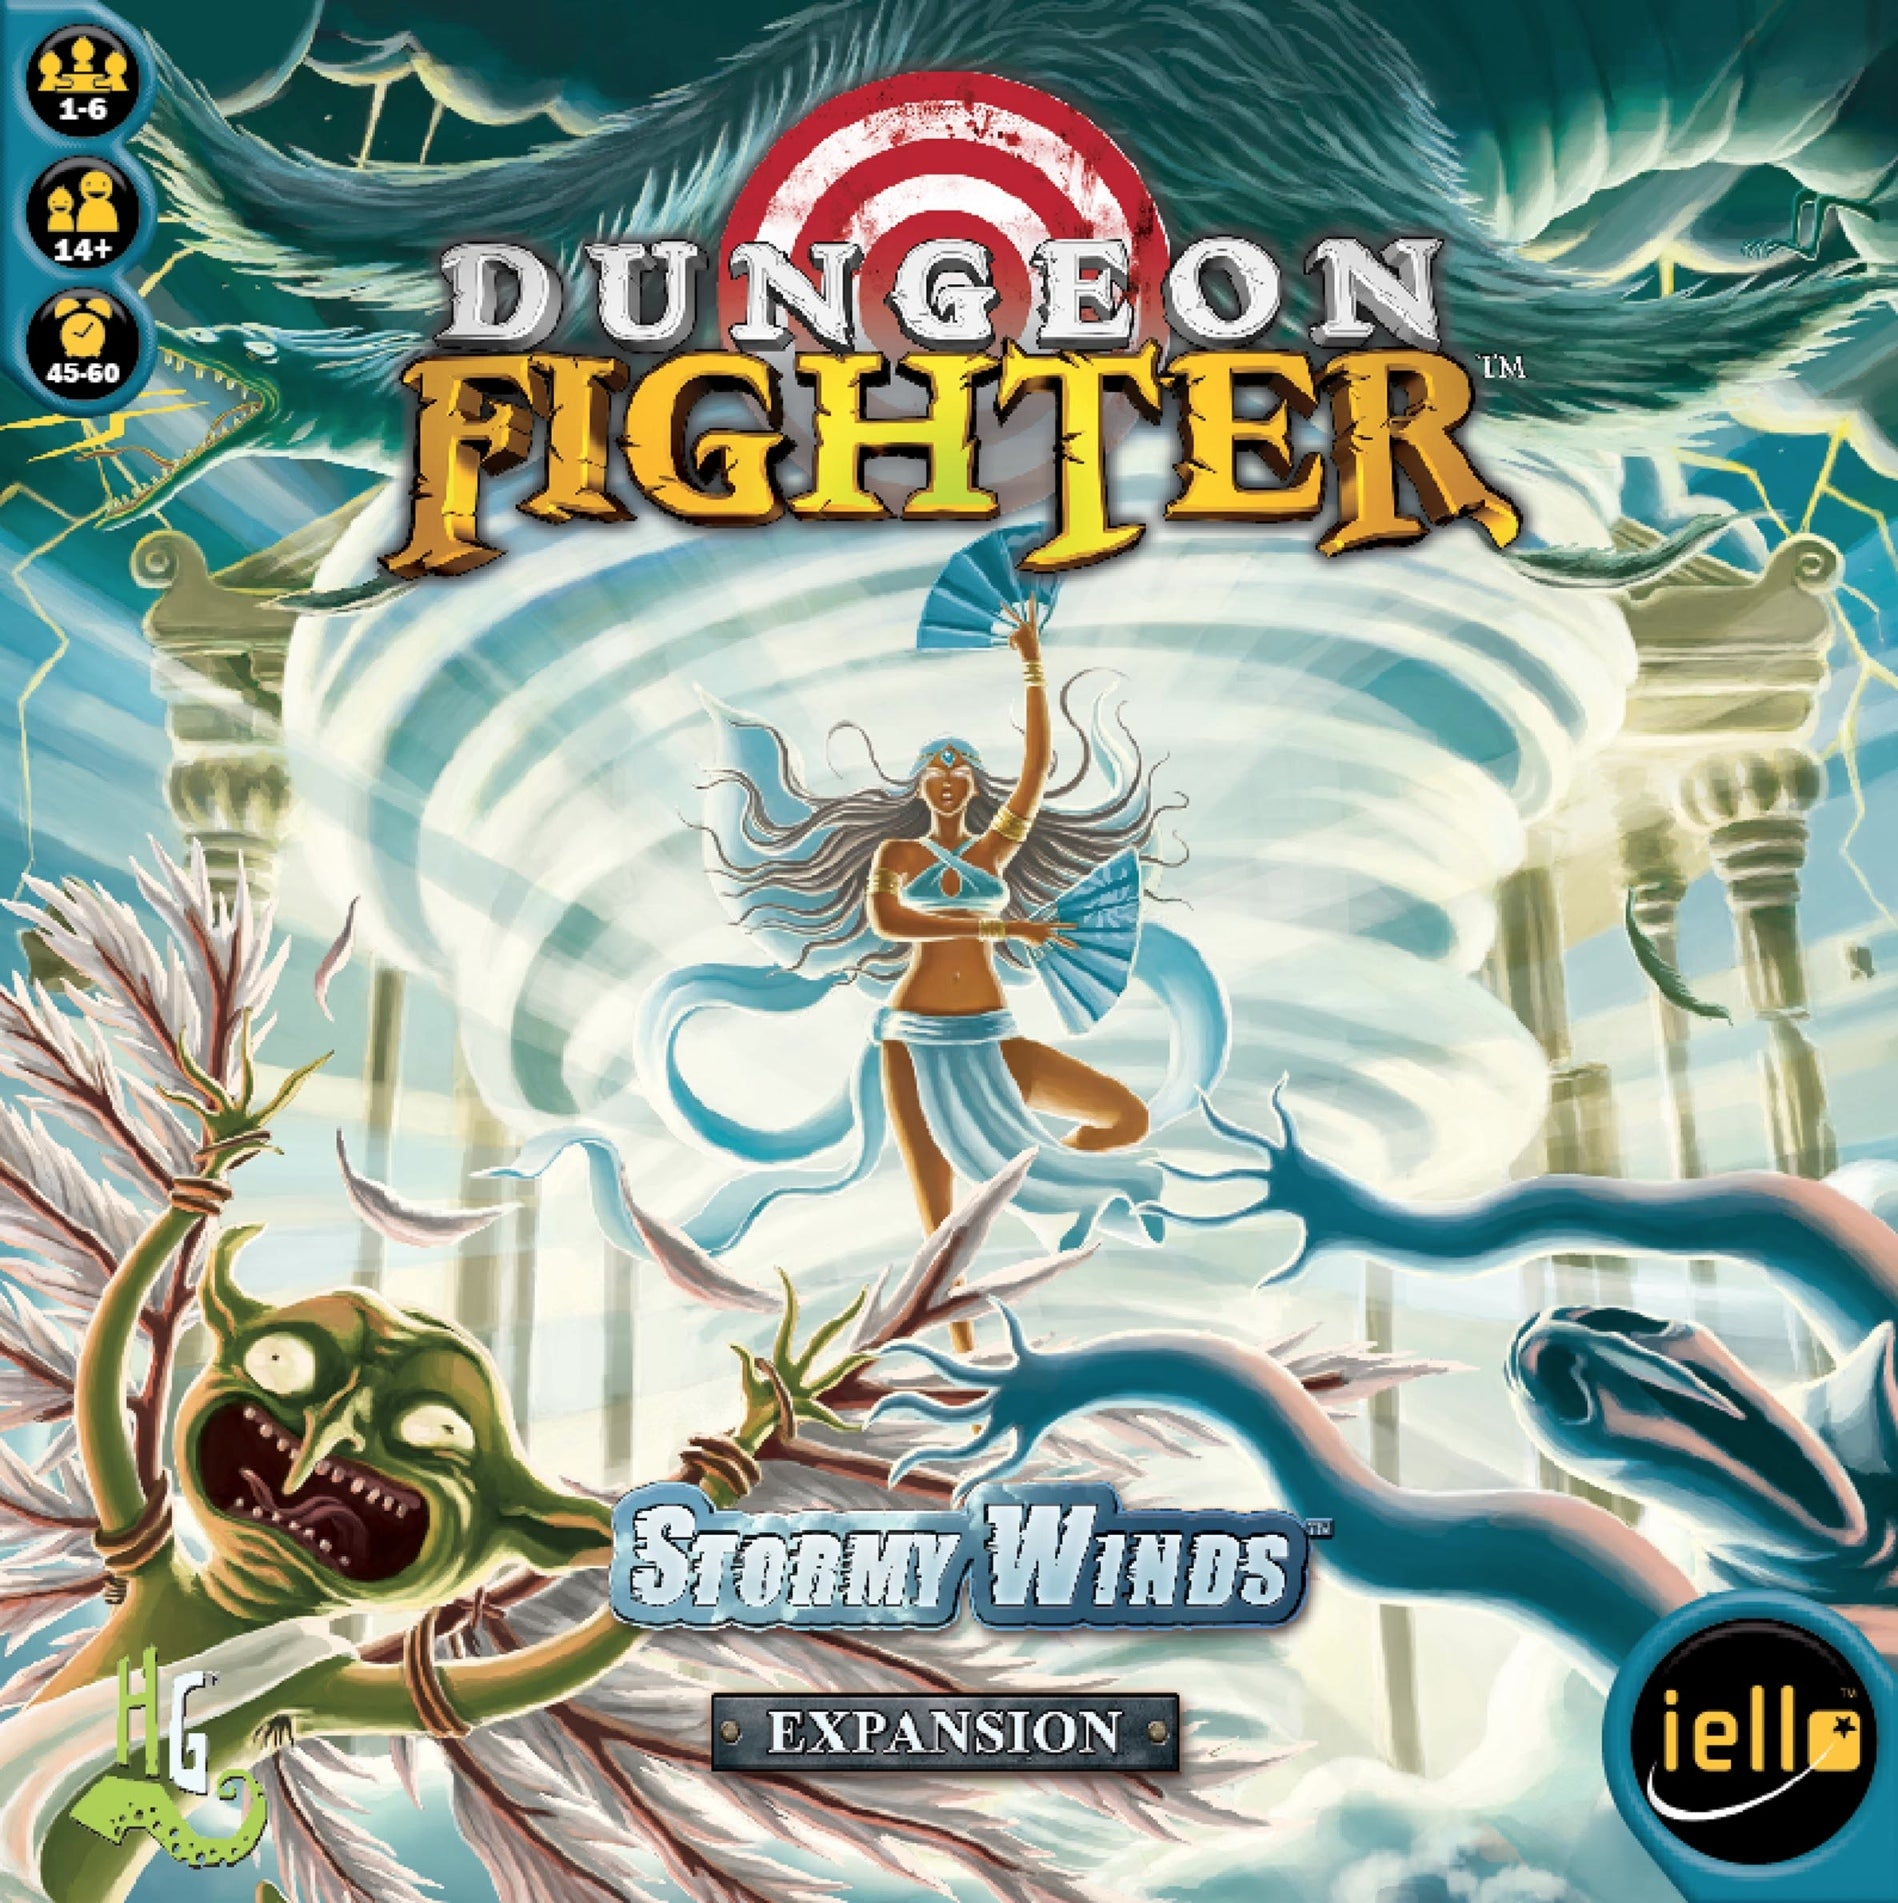 Dungeon Fighter- Stormy Winds